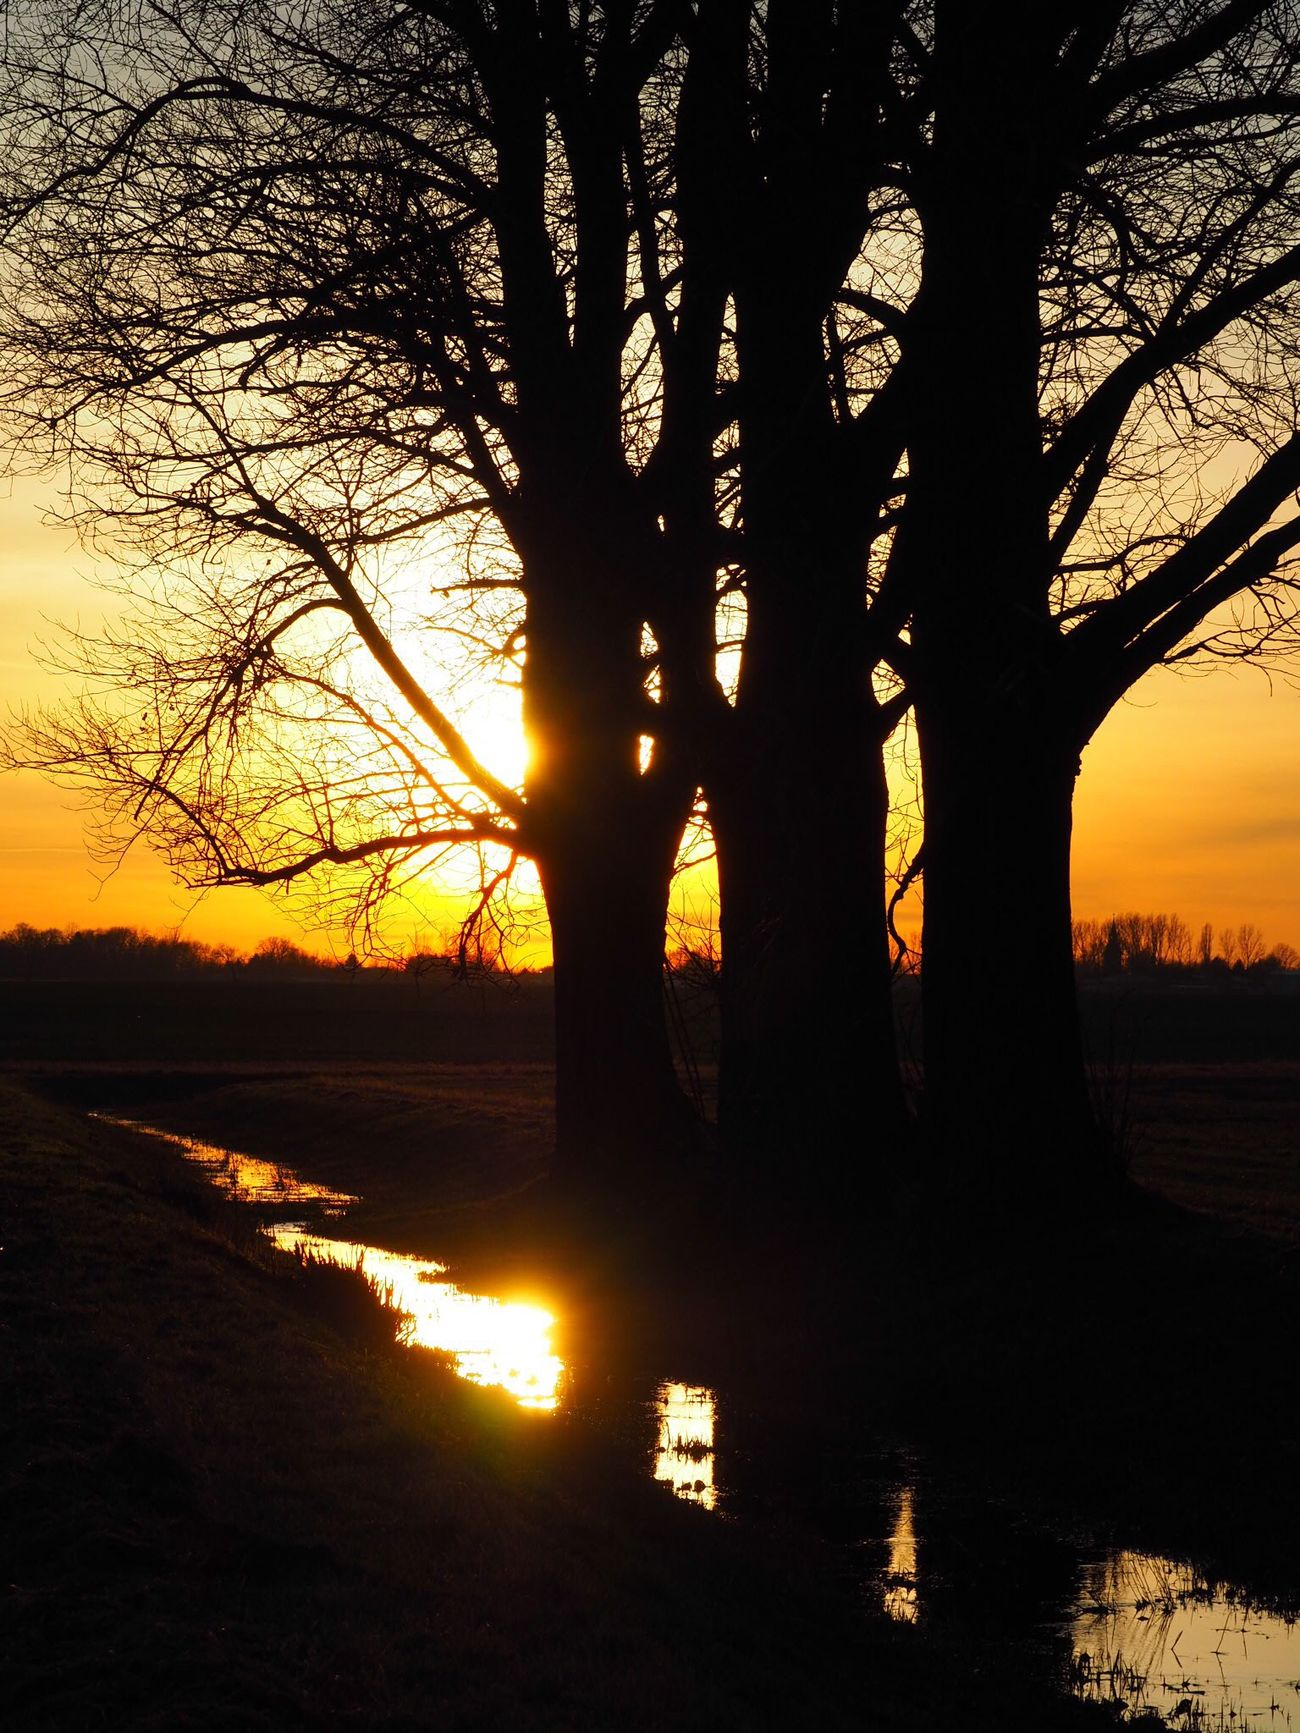 Sun_collection Sunset EyeEm Nature Lover Nature Capture The Moment Reflection Trees